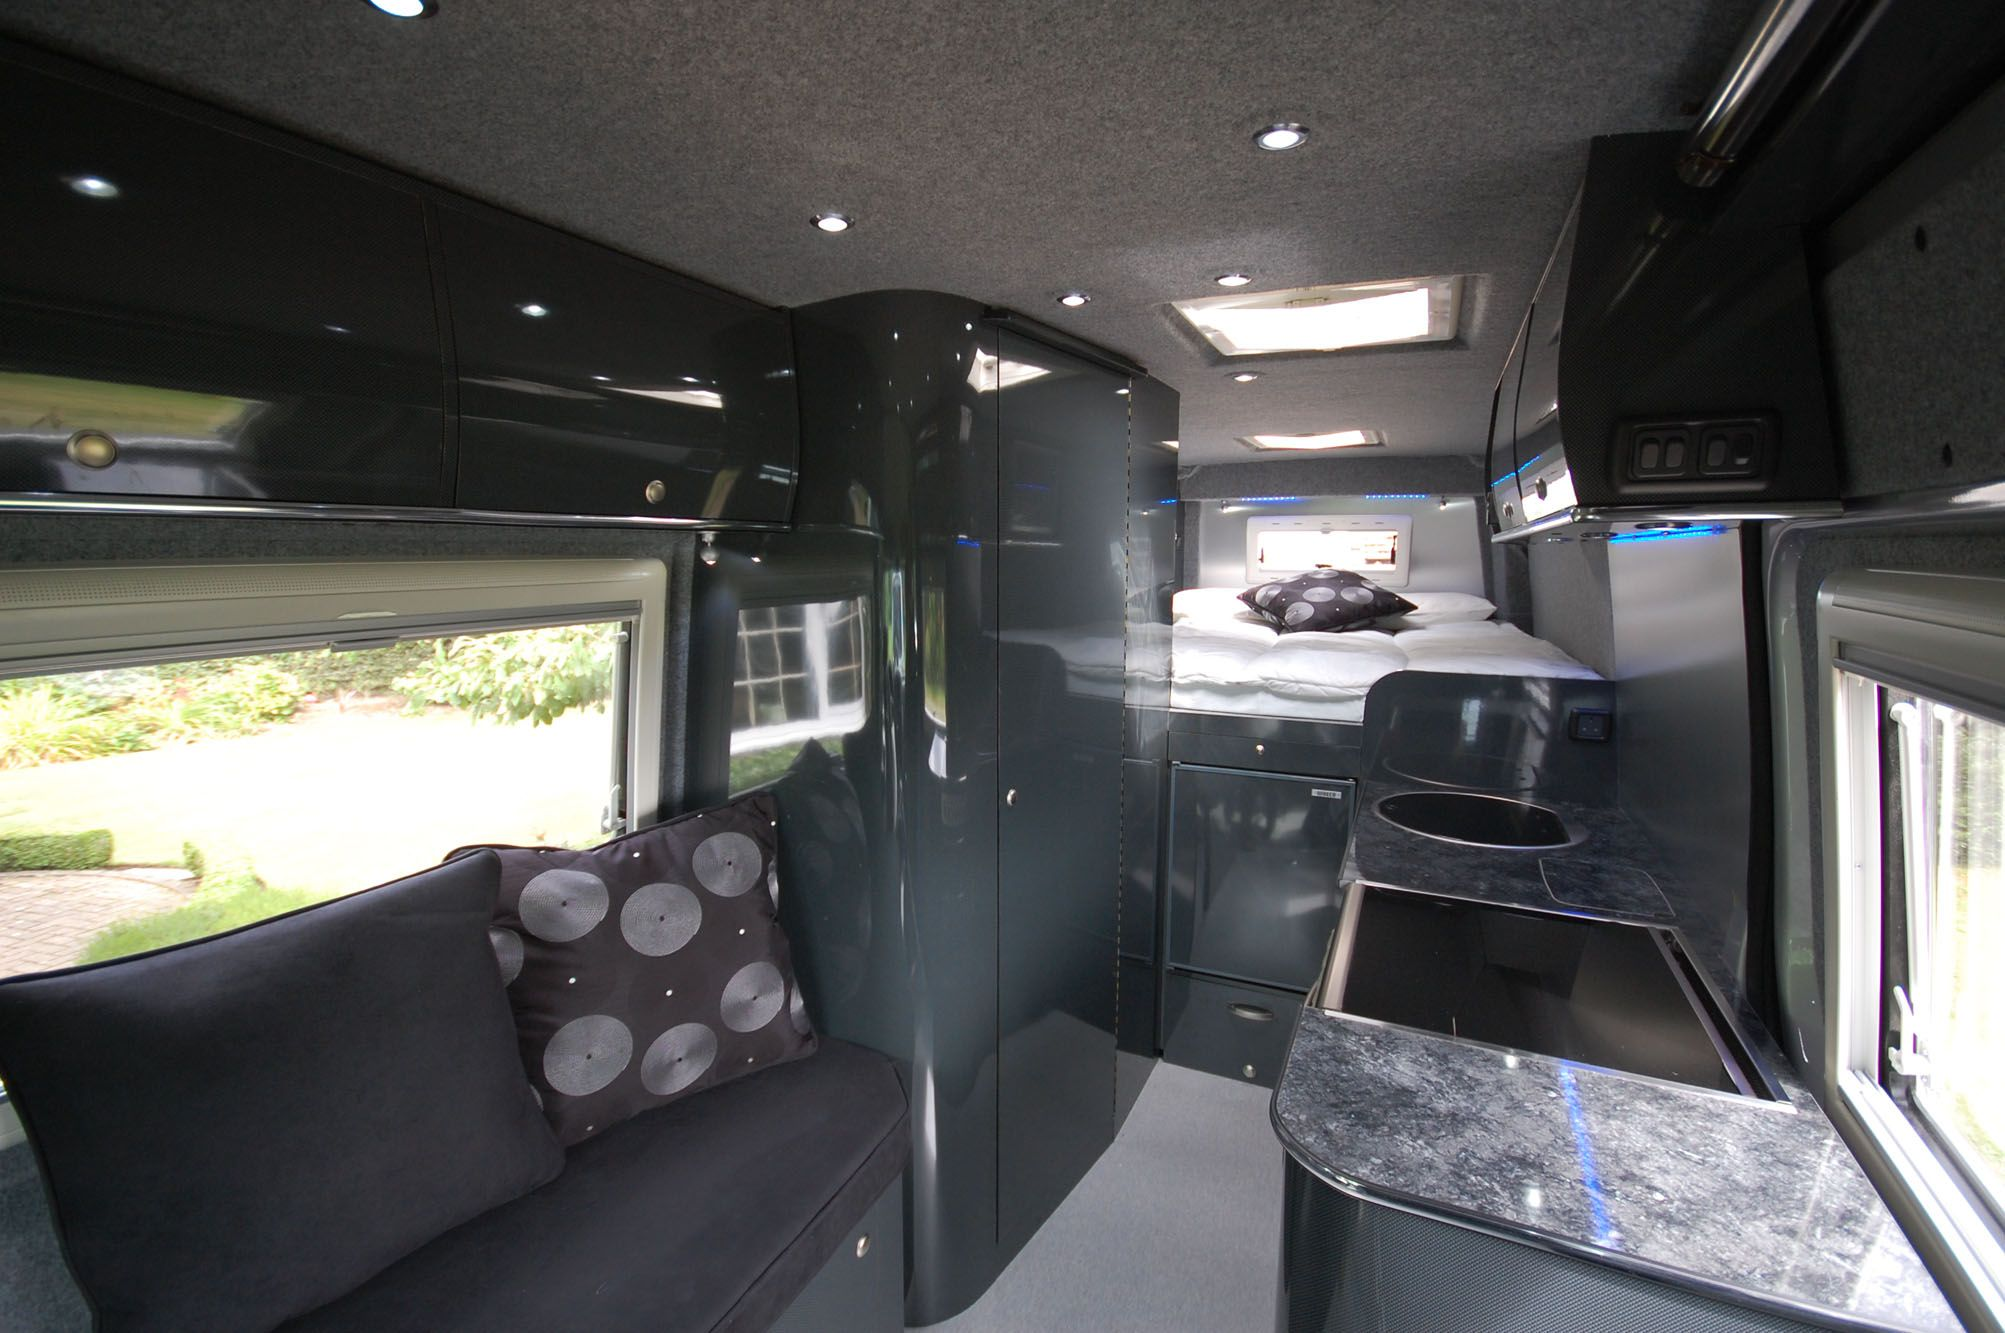 Modern rv interiors - Campervan Interior Google Search